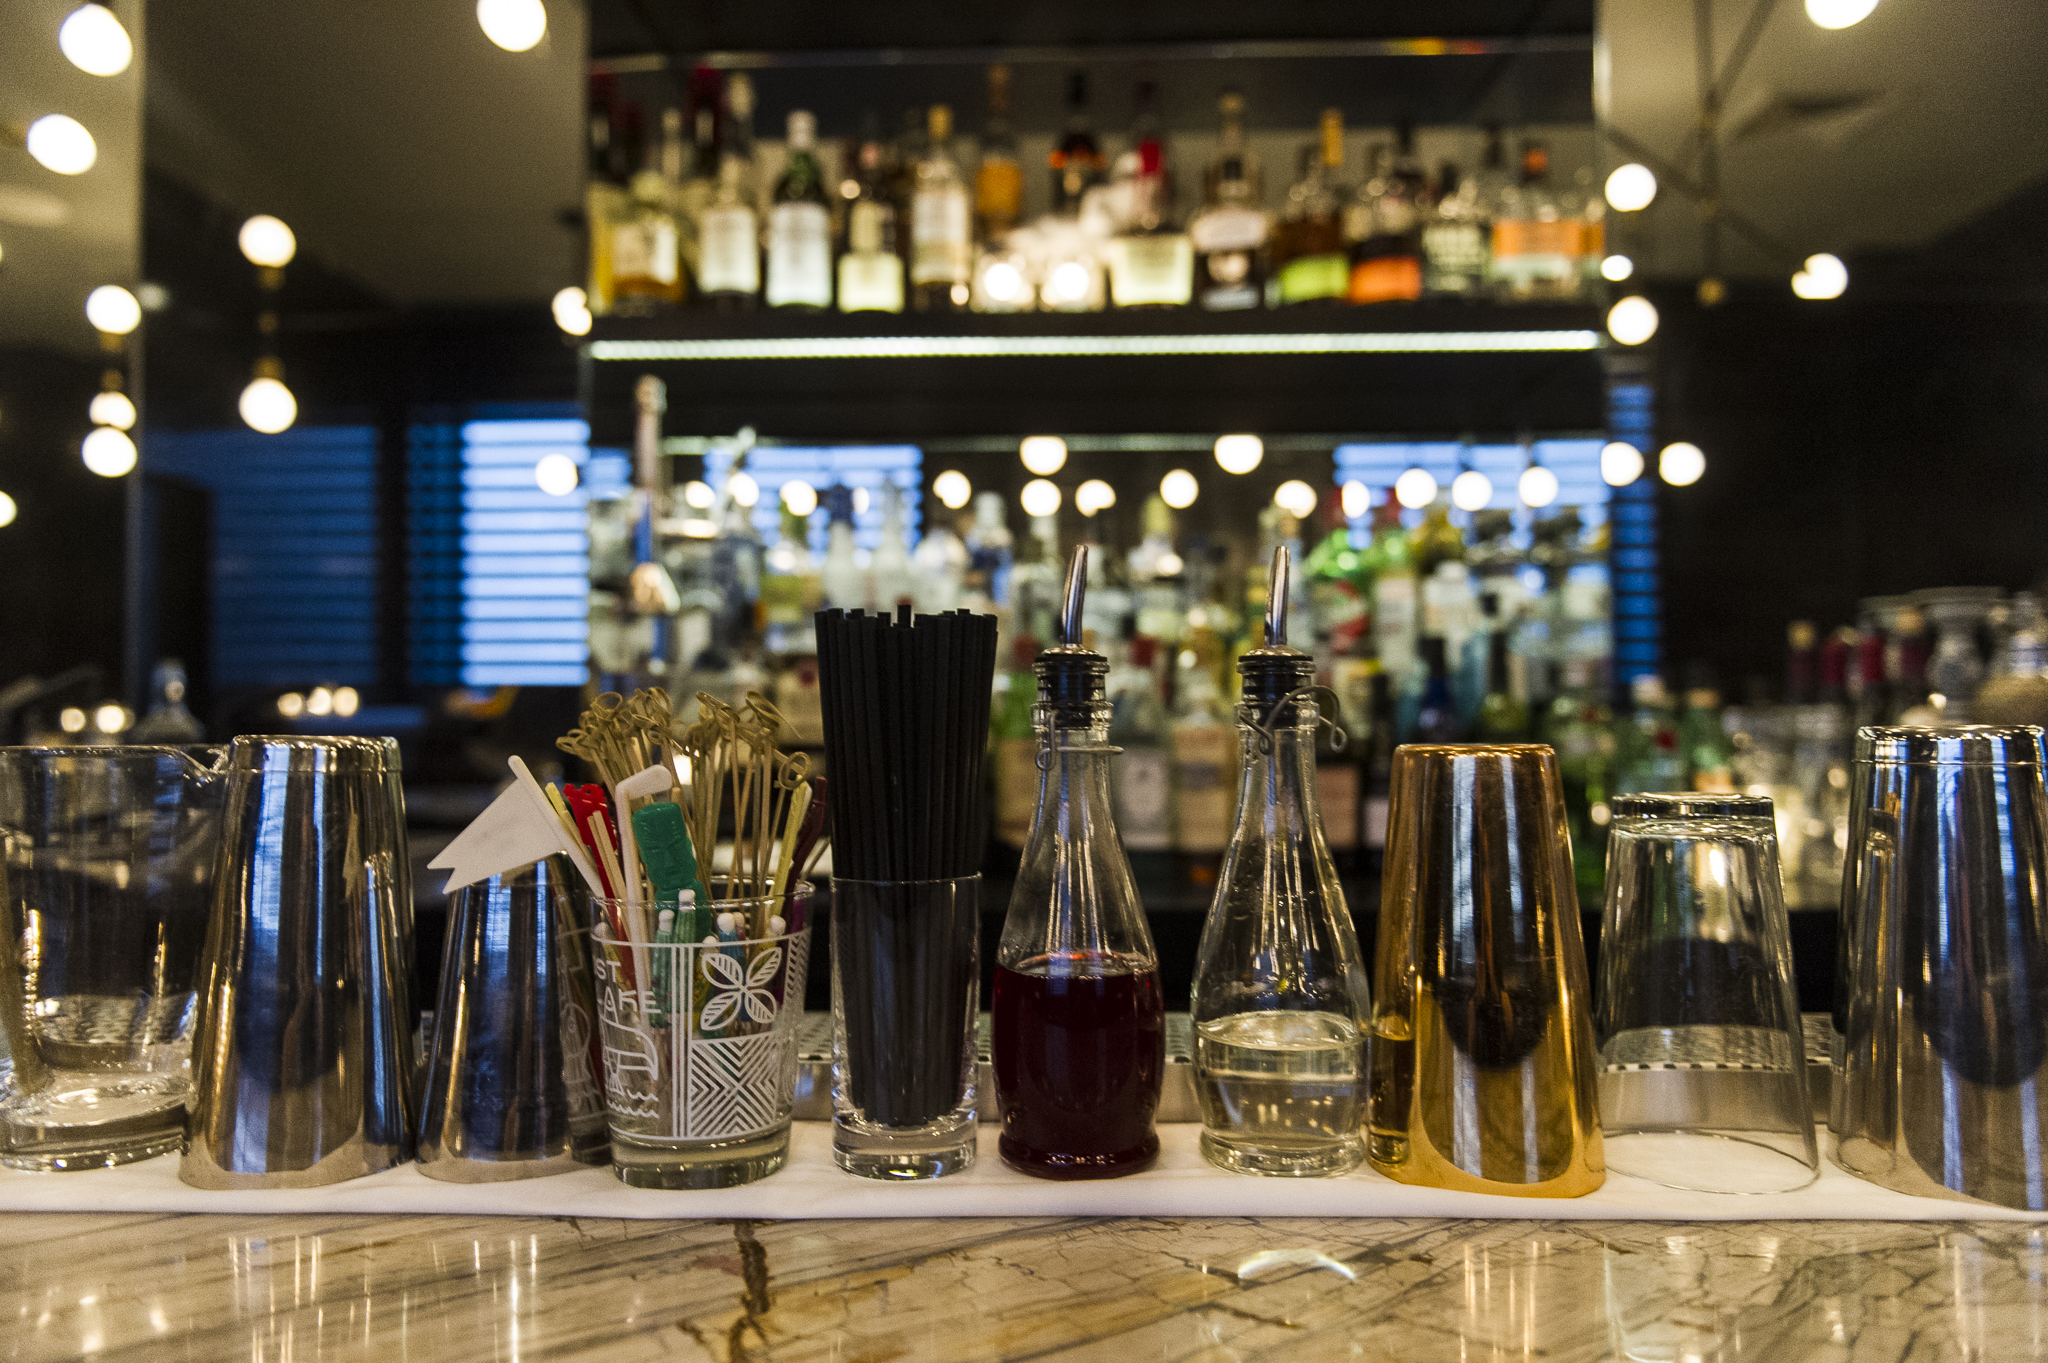 At Cloakroom, bartenders tailor drinks to their customer's liking, based on their preferred alcohol base. Photos by Andrej Ivanov.